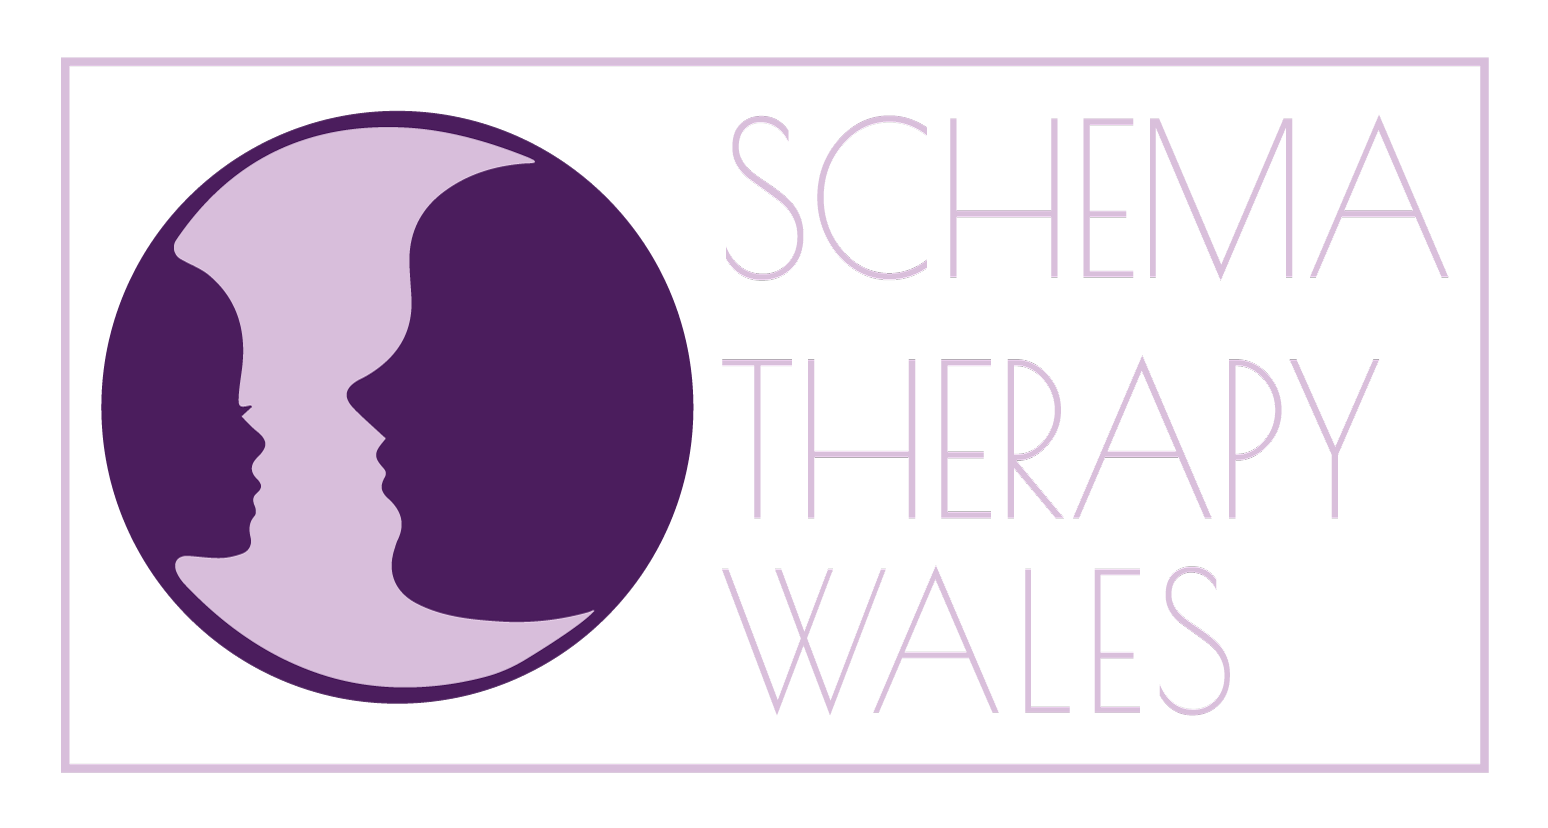 Schema Therapy Wales